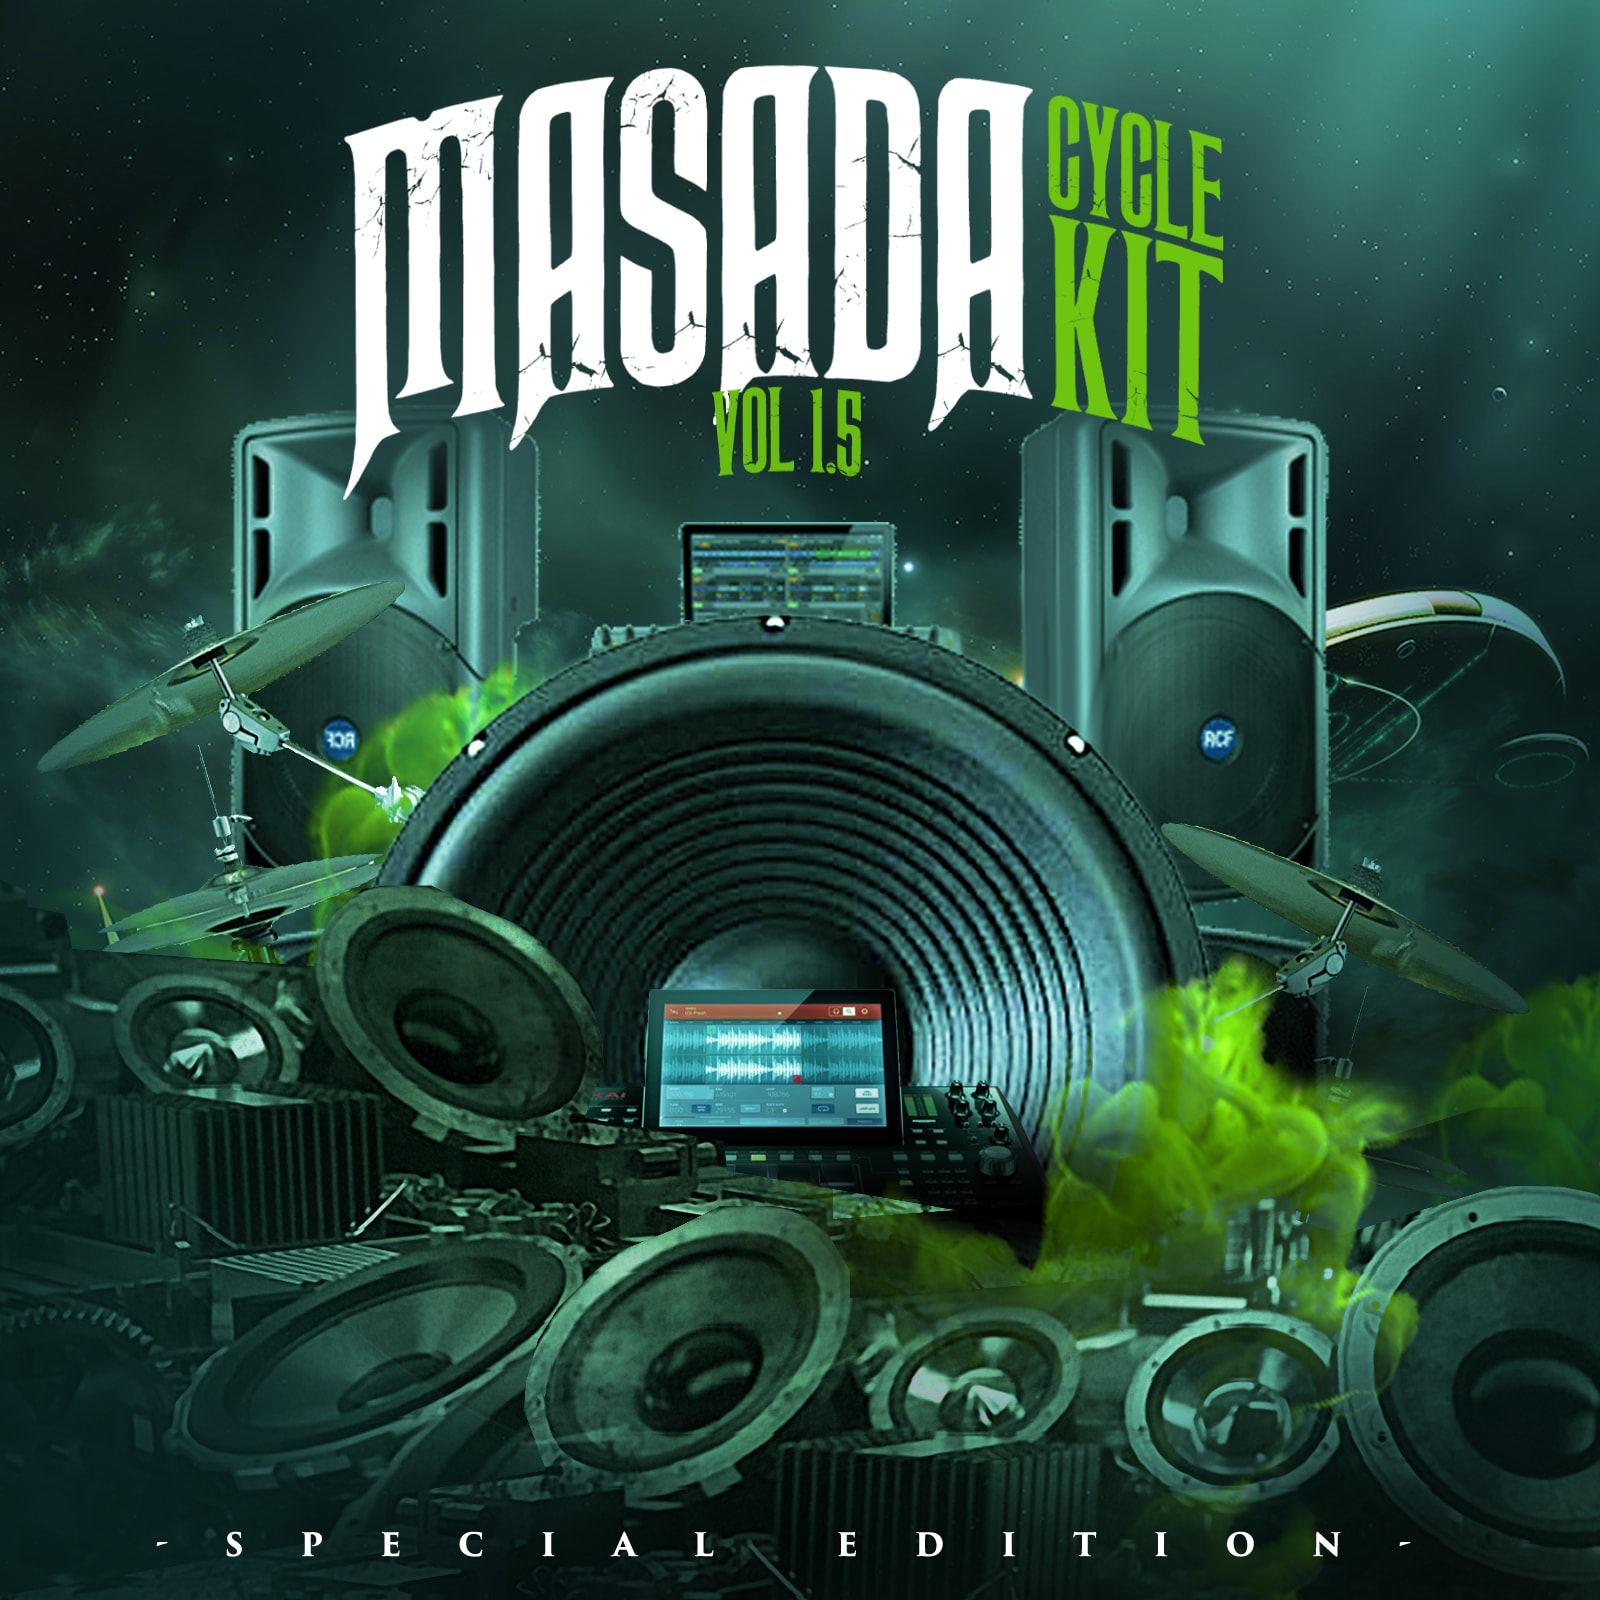 (Exclusive) Masada Cycle kit 1.5 Special Edition